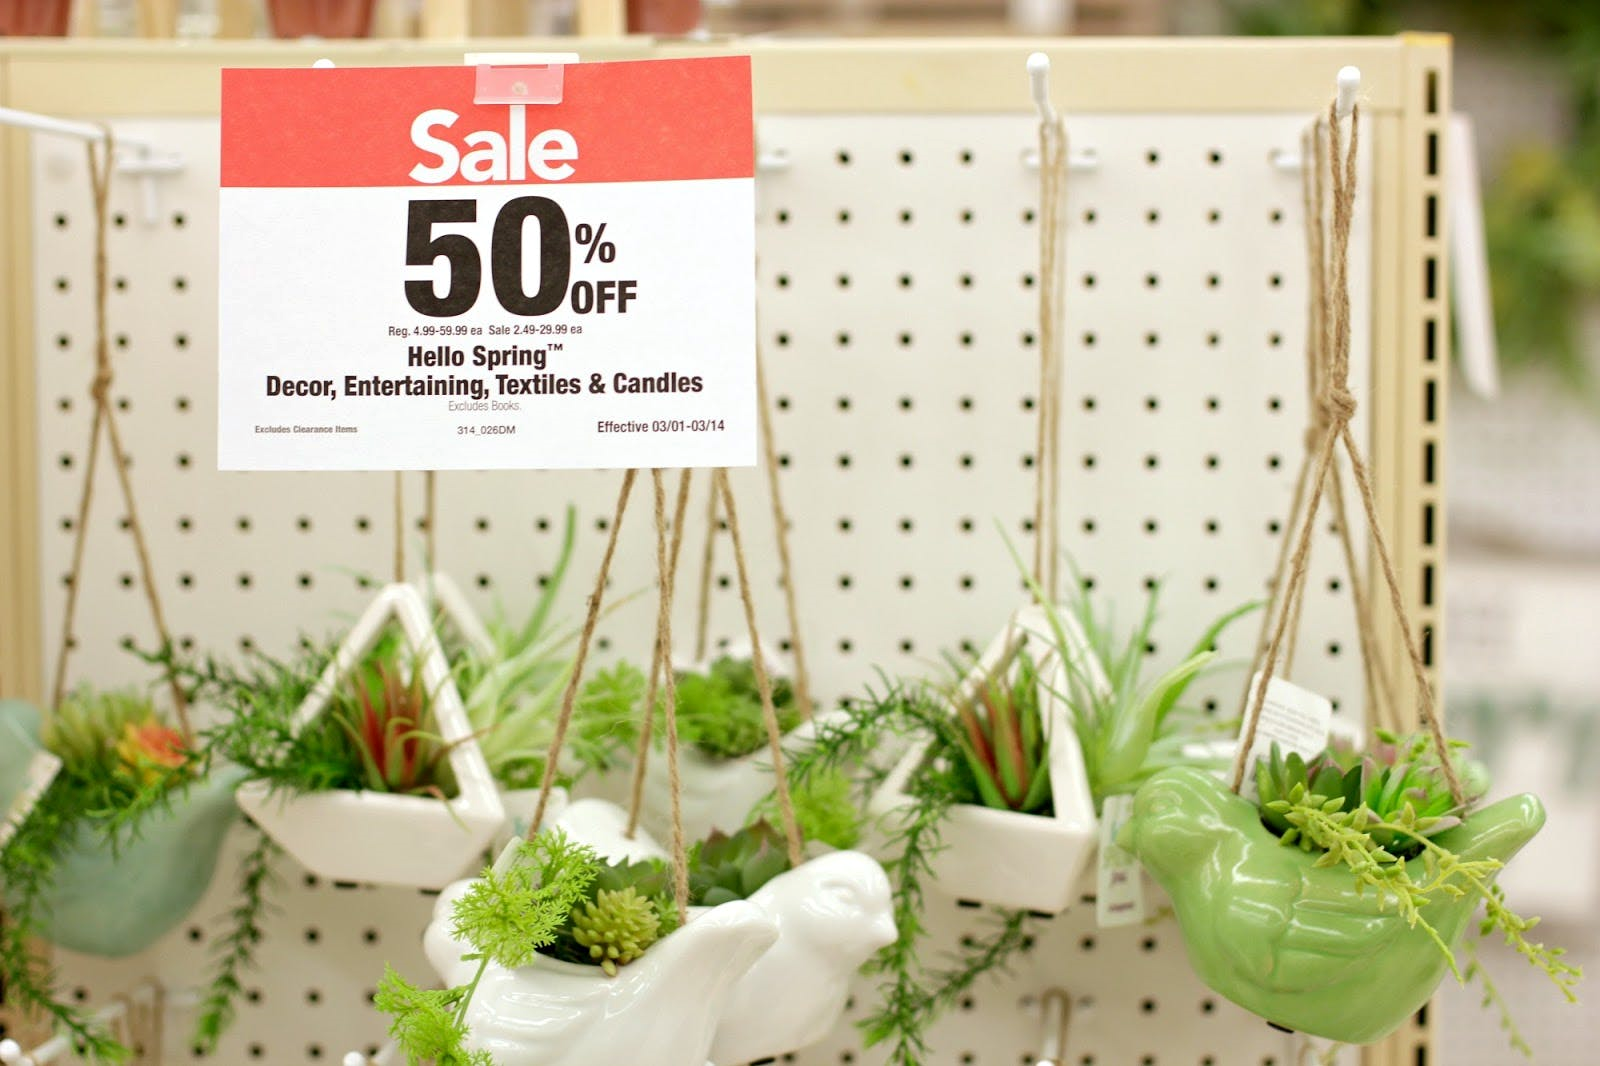 50% off sign in front of spring planters at Joann's Fabric